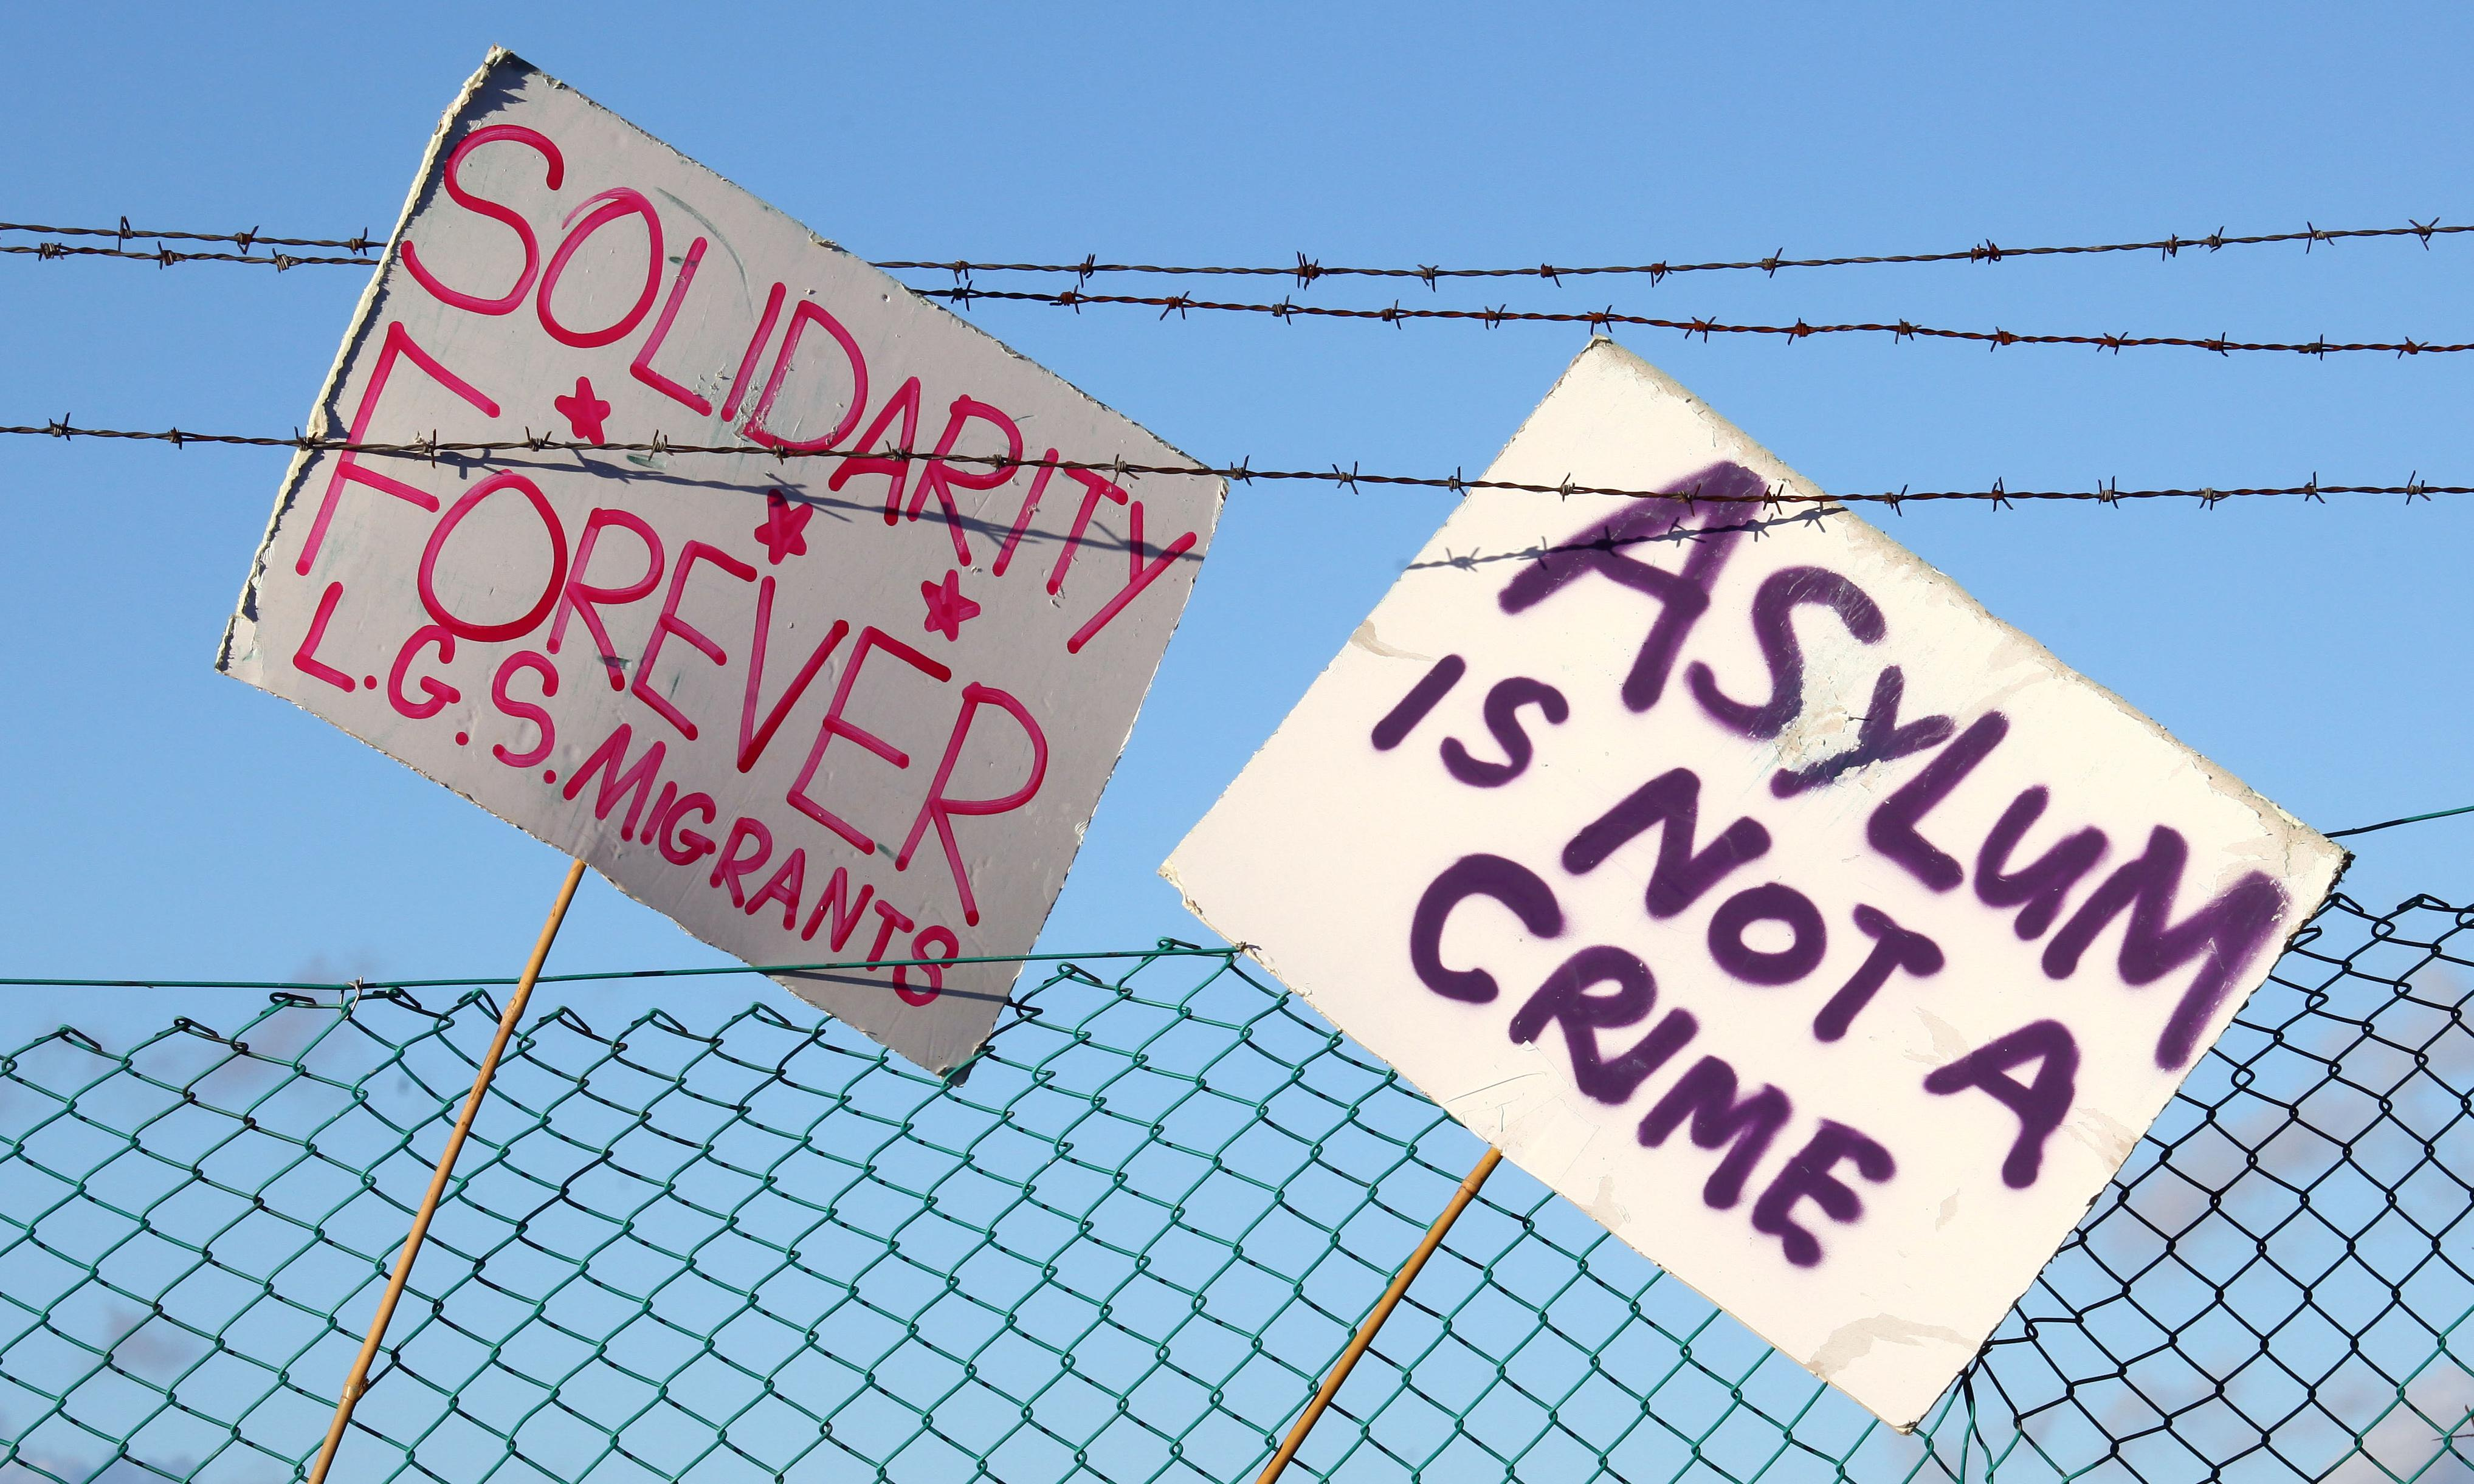 Judge rules £1/hr wages for immigration detainees are lawful